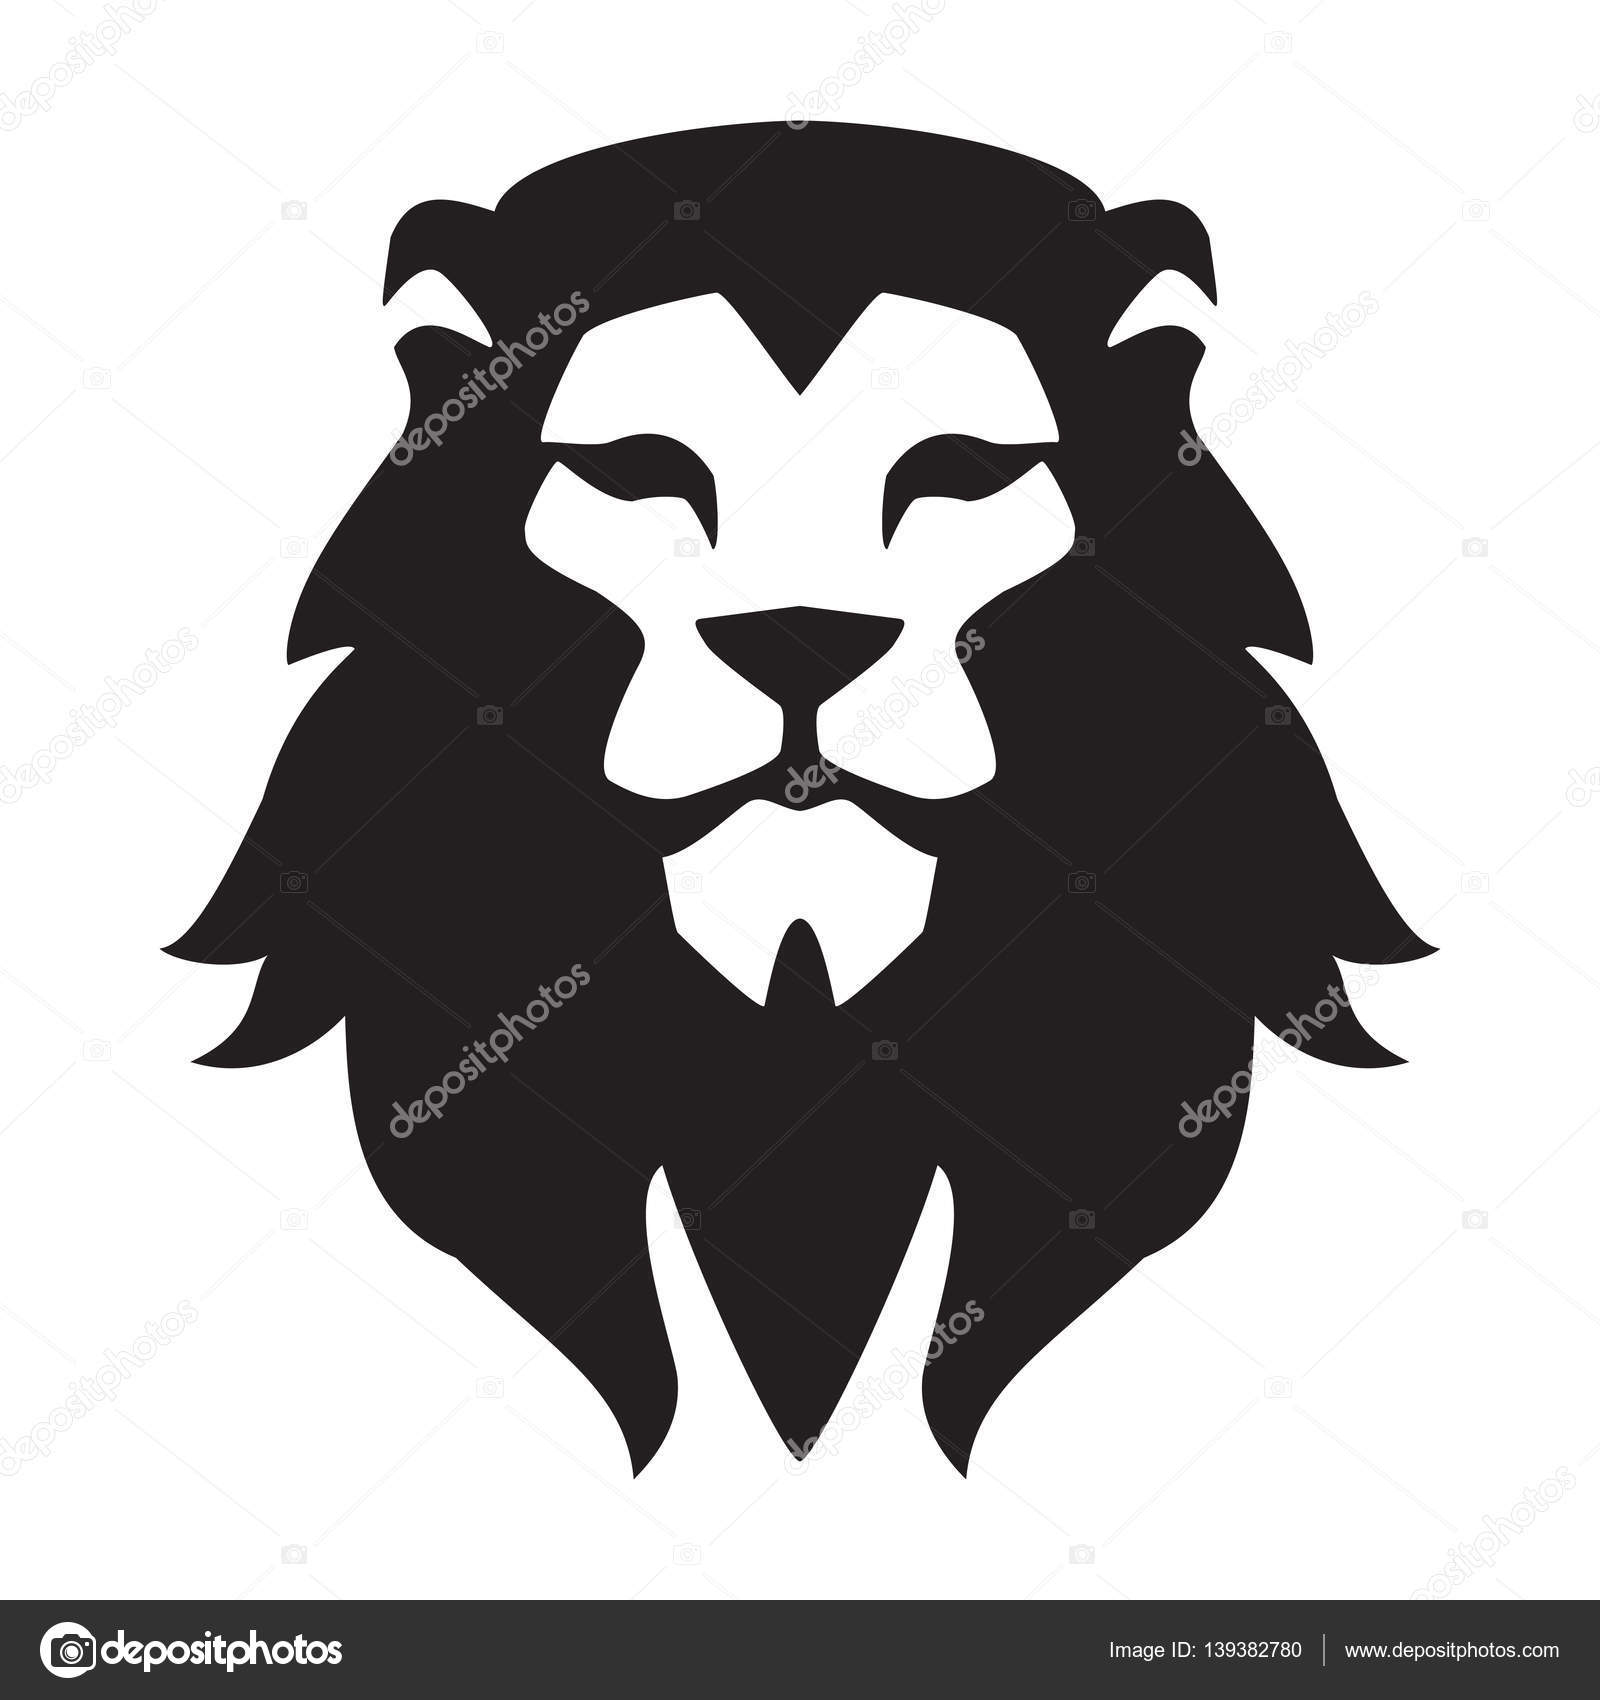 lion head logo template animal wild cat face graphic sign pride strong